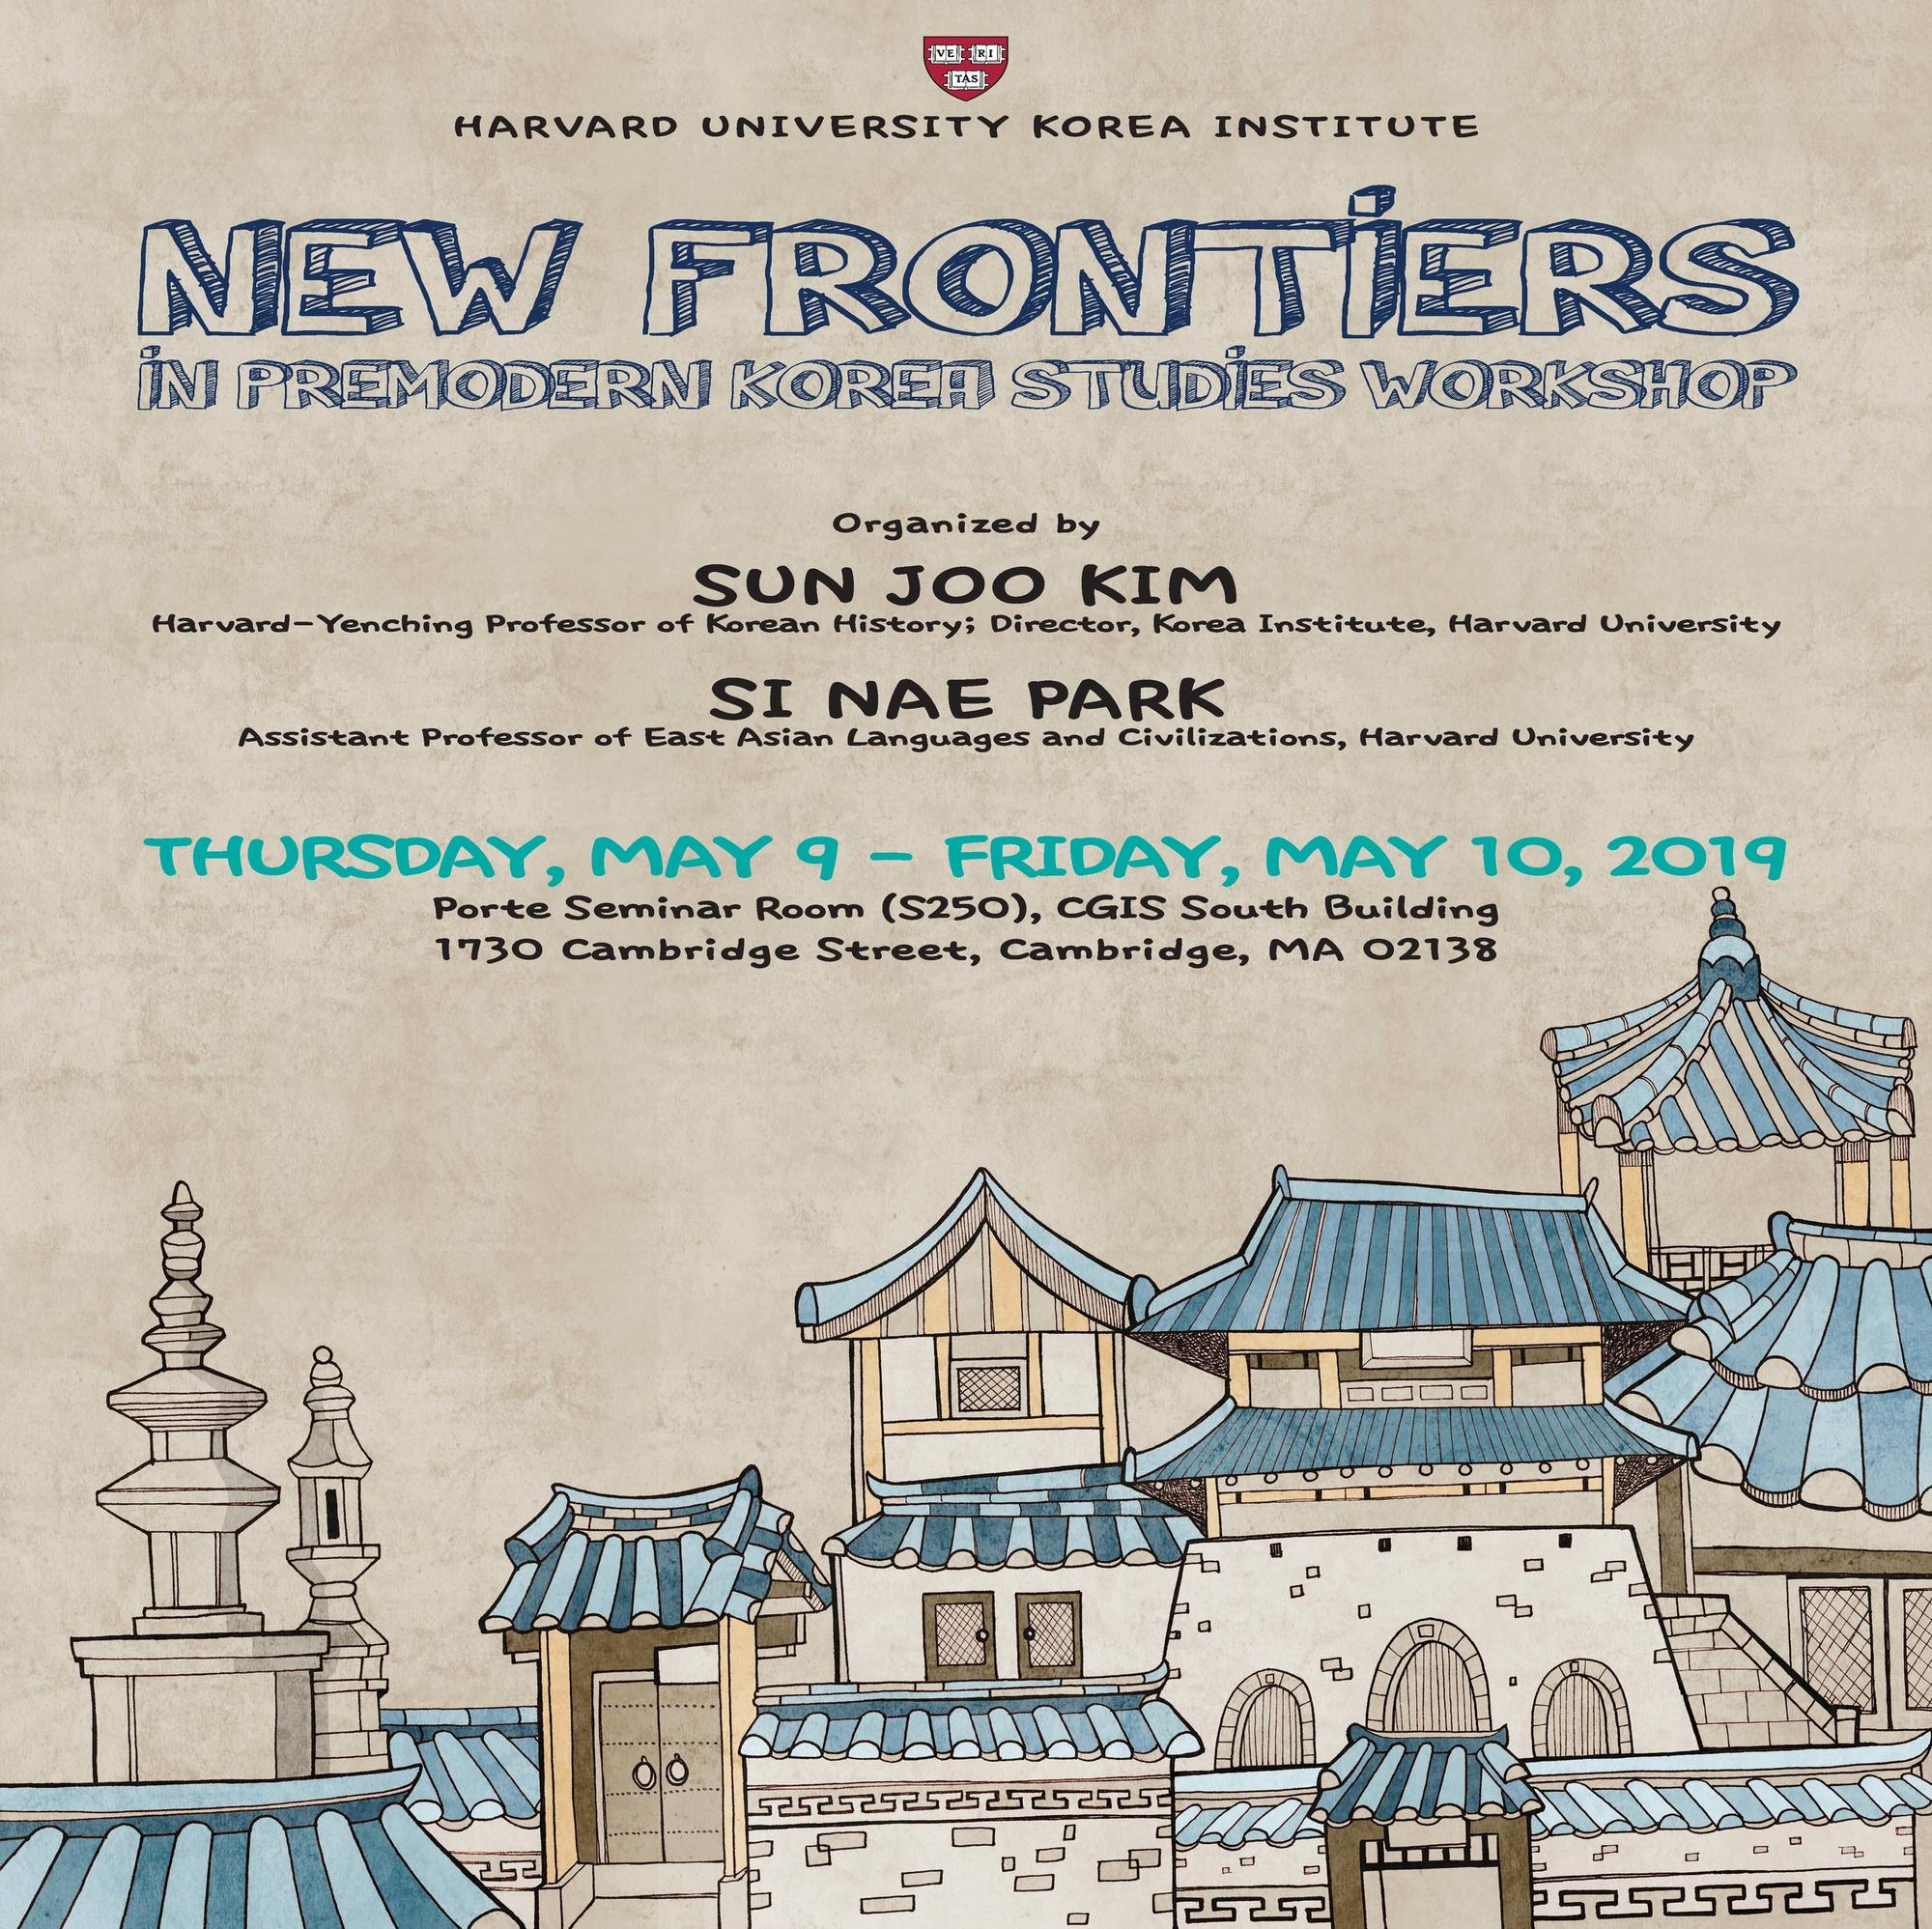 2019 New Frontiers in Premodern Korea Studies Workshop